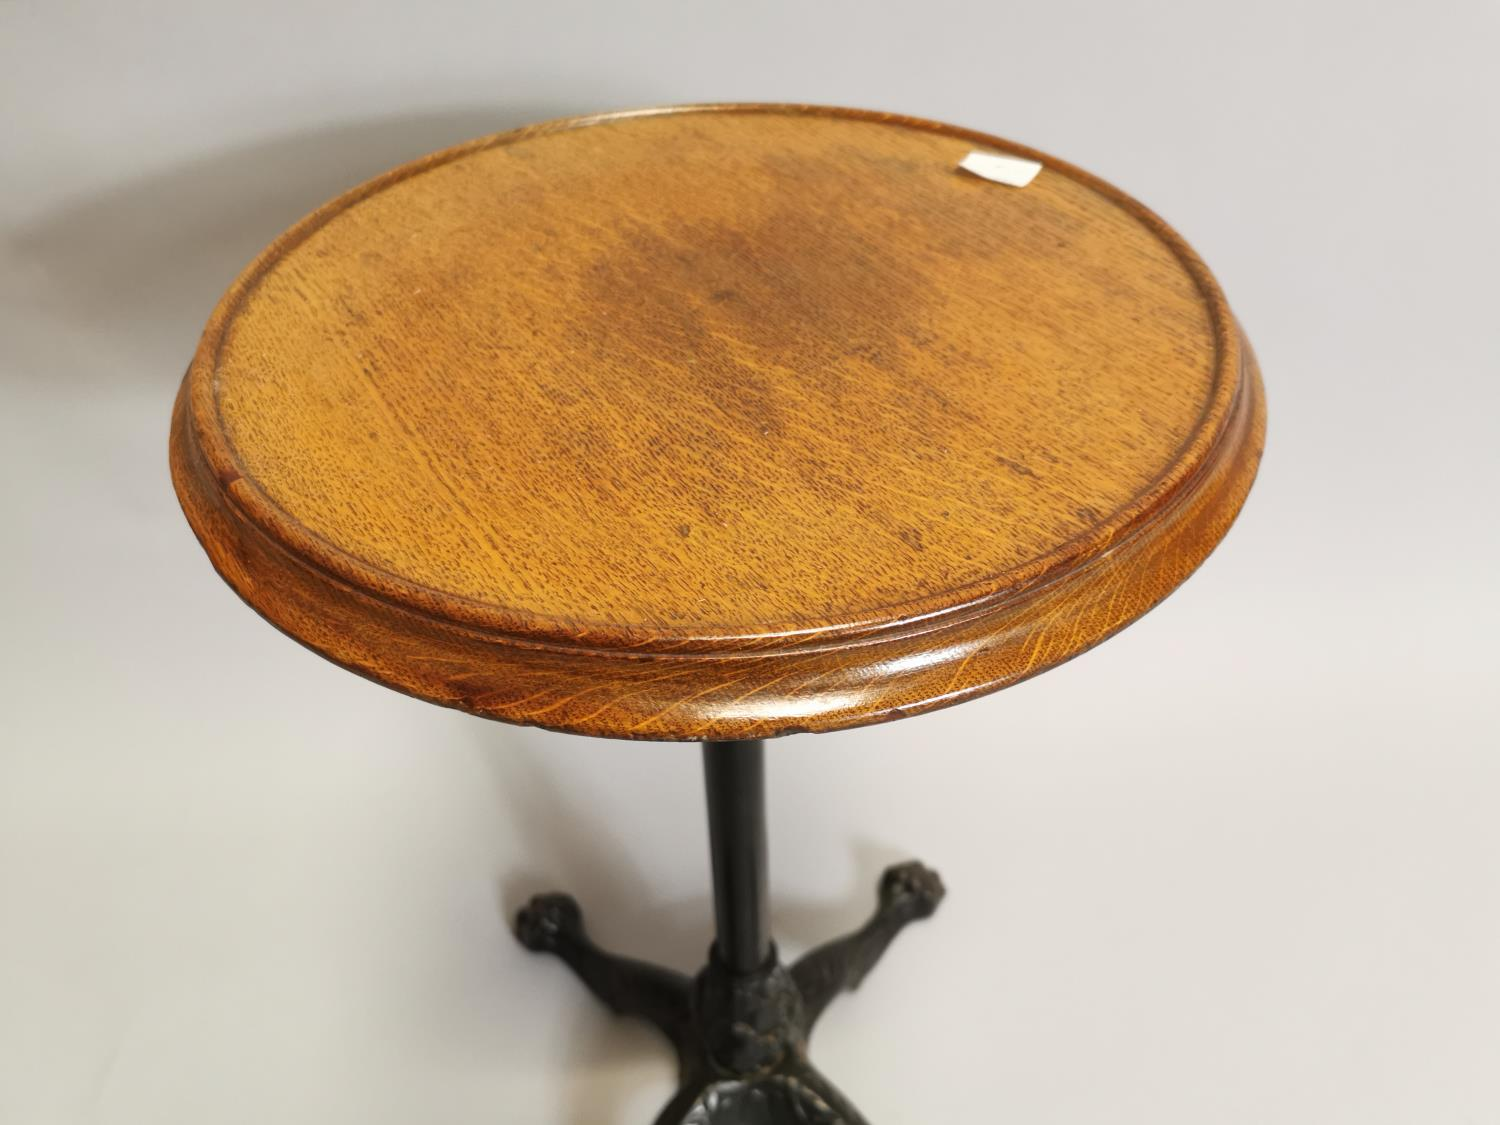 Early 20th. C. wine table - Image 2 of 5